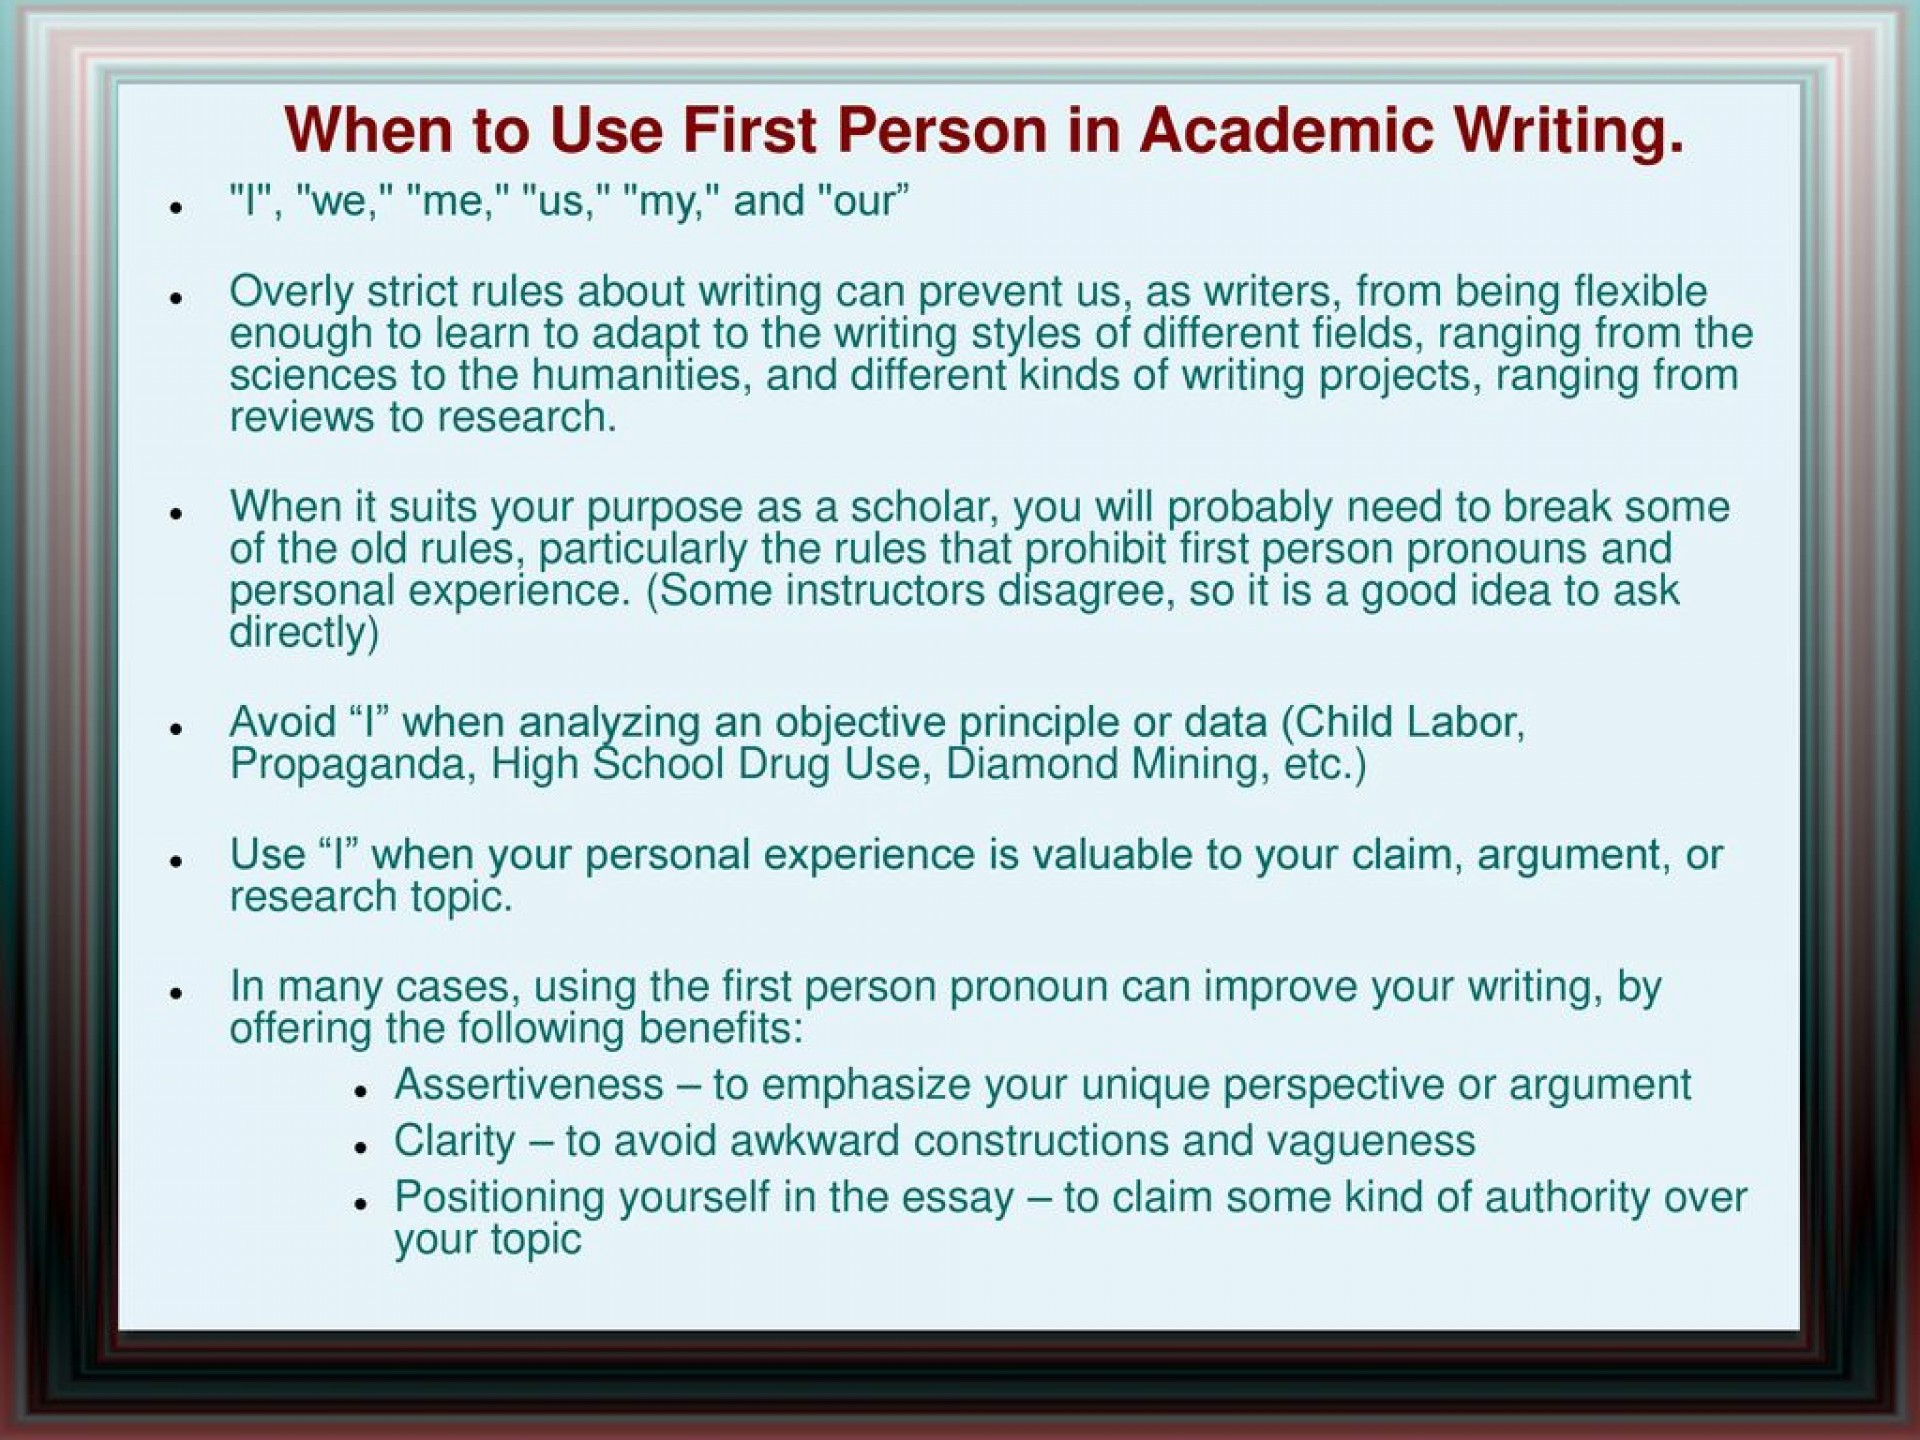 008 Whentousefirstpersoninacademicwriting Are Researchs Written In First Person Impressive Research Papers Proposals The Paper Is Voice 1920